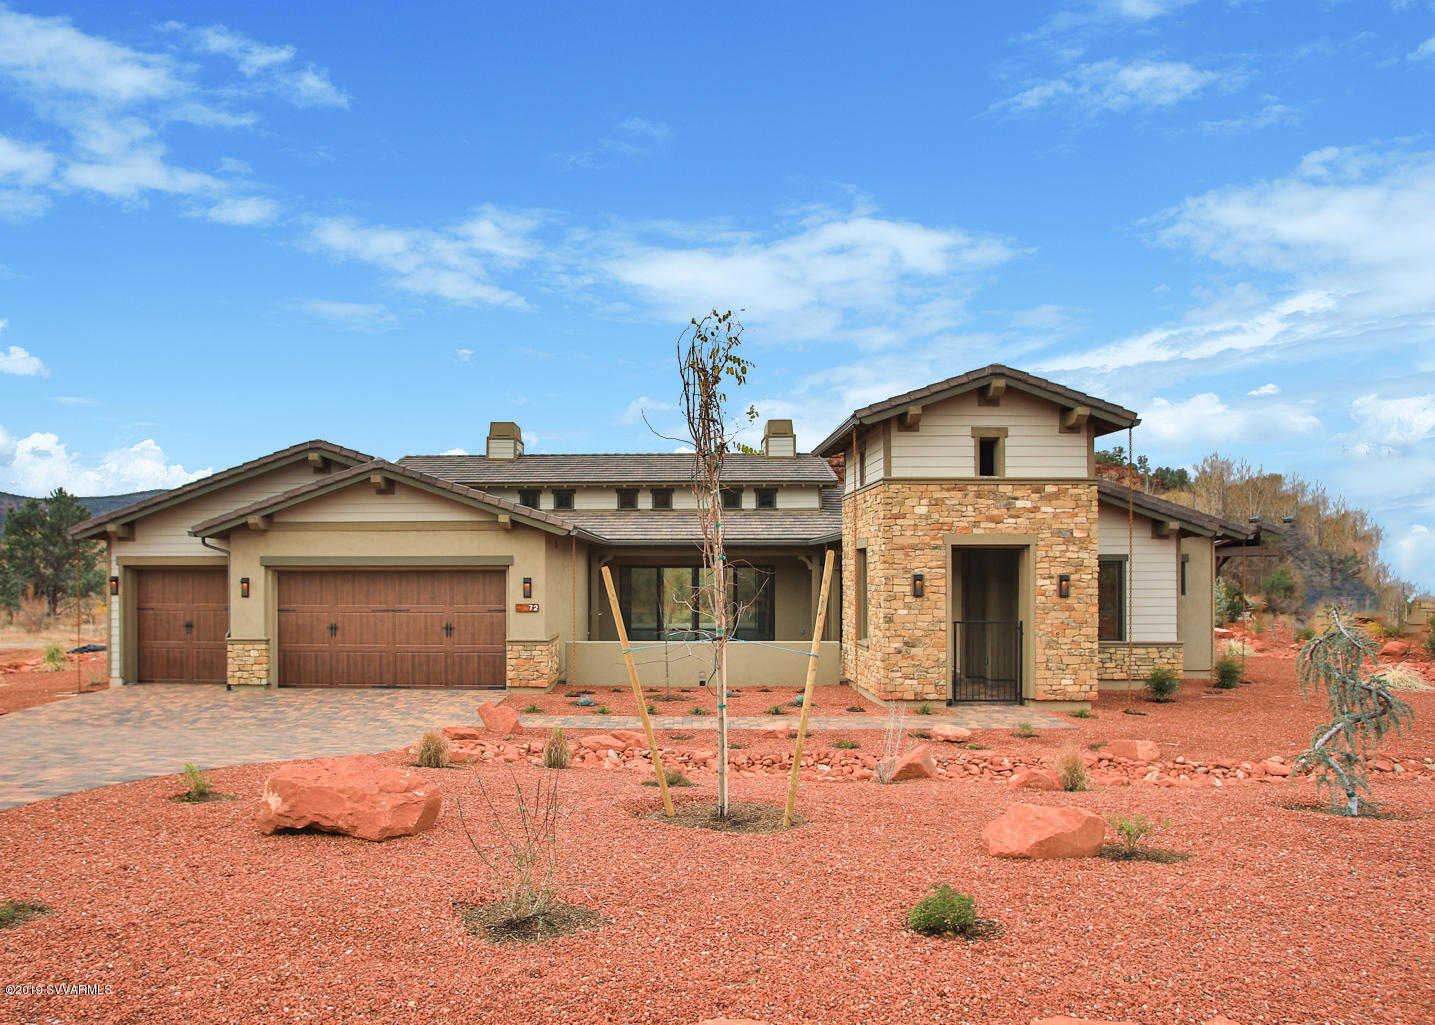 72 Lot 25 Lagos Court Sedona, AZ 86351